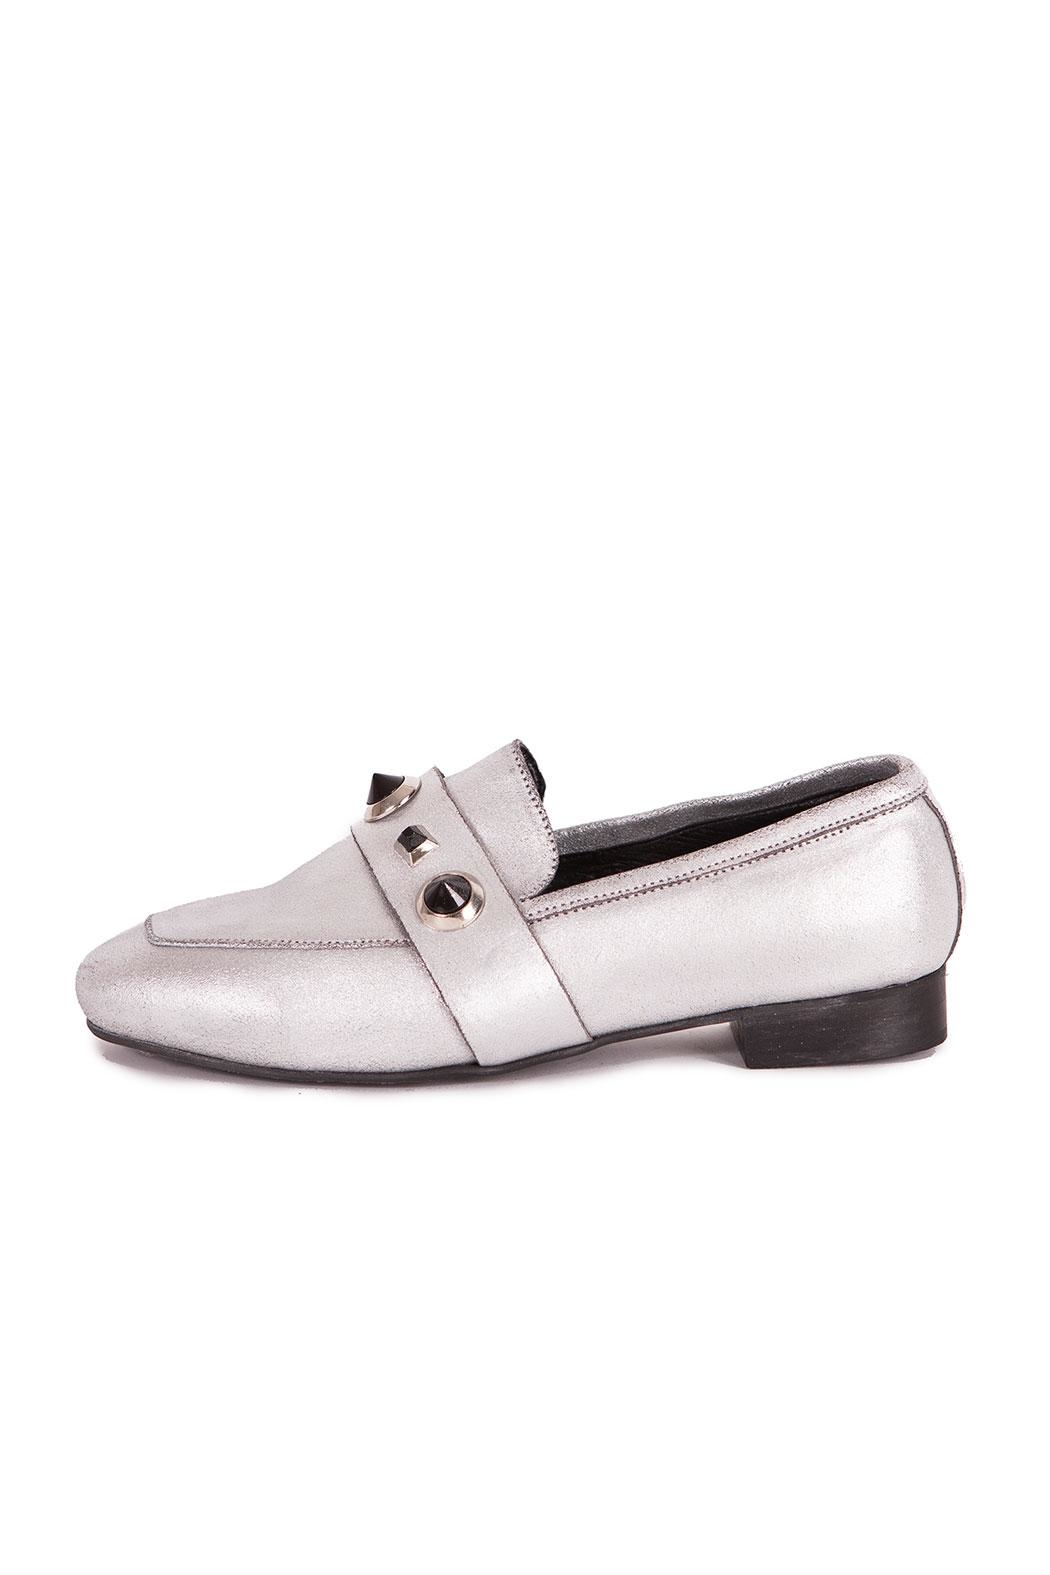 Pixy Milano Metallic Leather Oxfords - Back Cropped Image